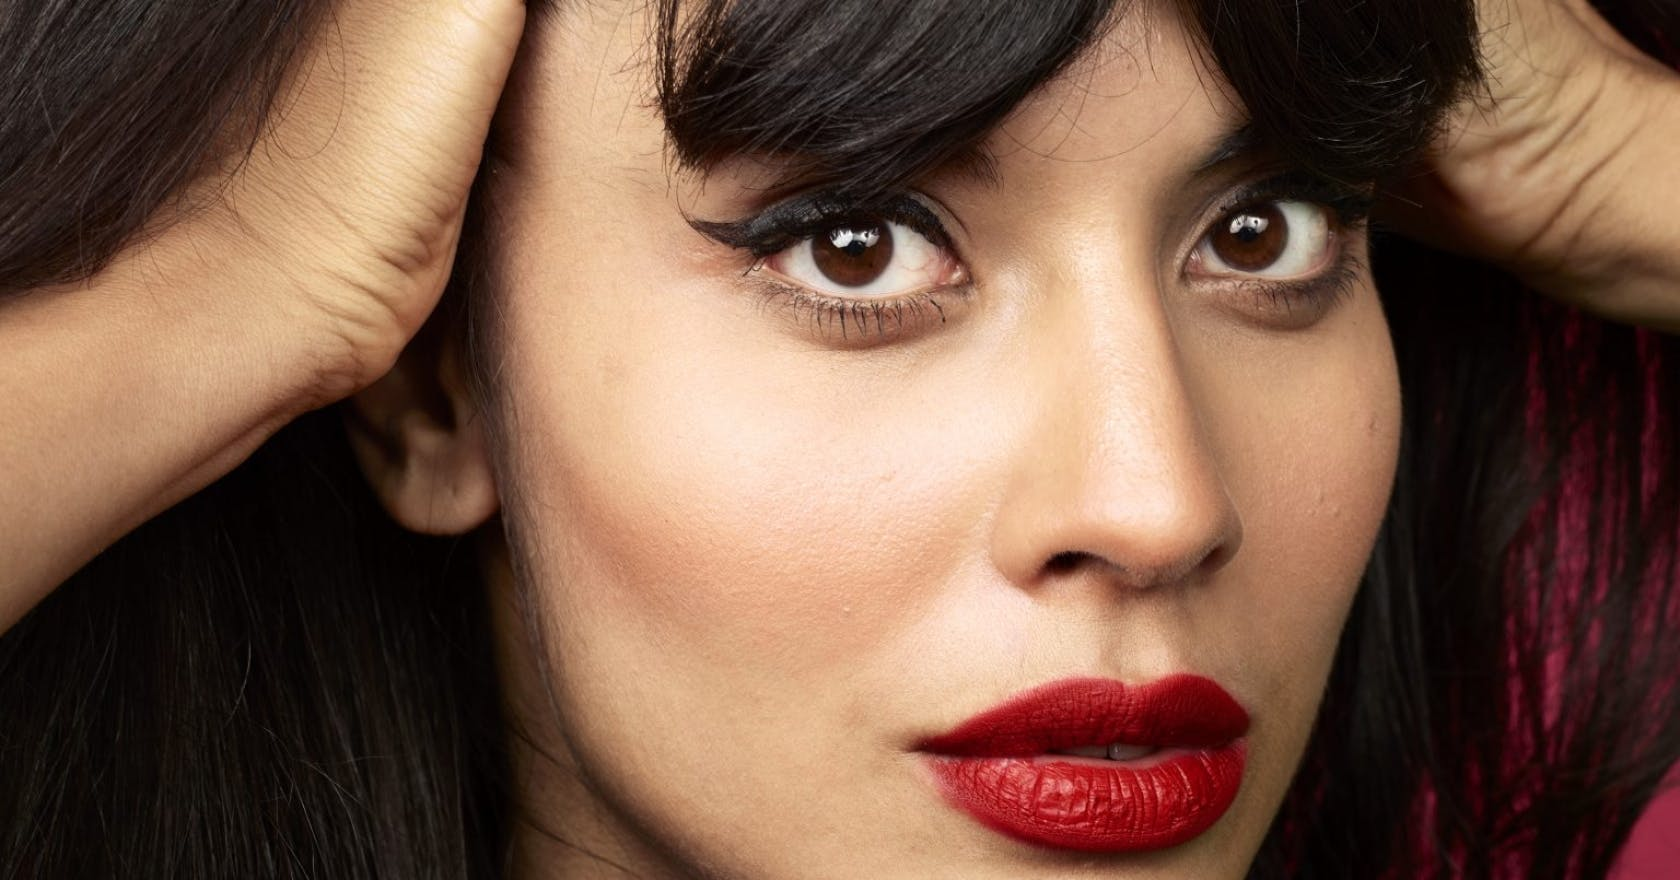 Exclusive: Jameela Jamil on the joys of not caring what people think